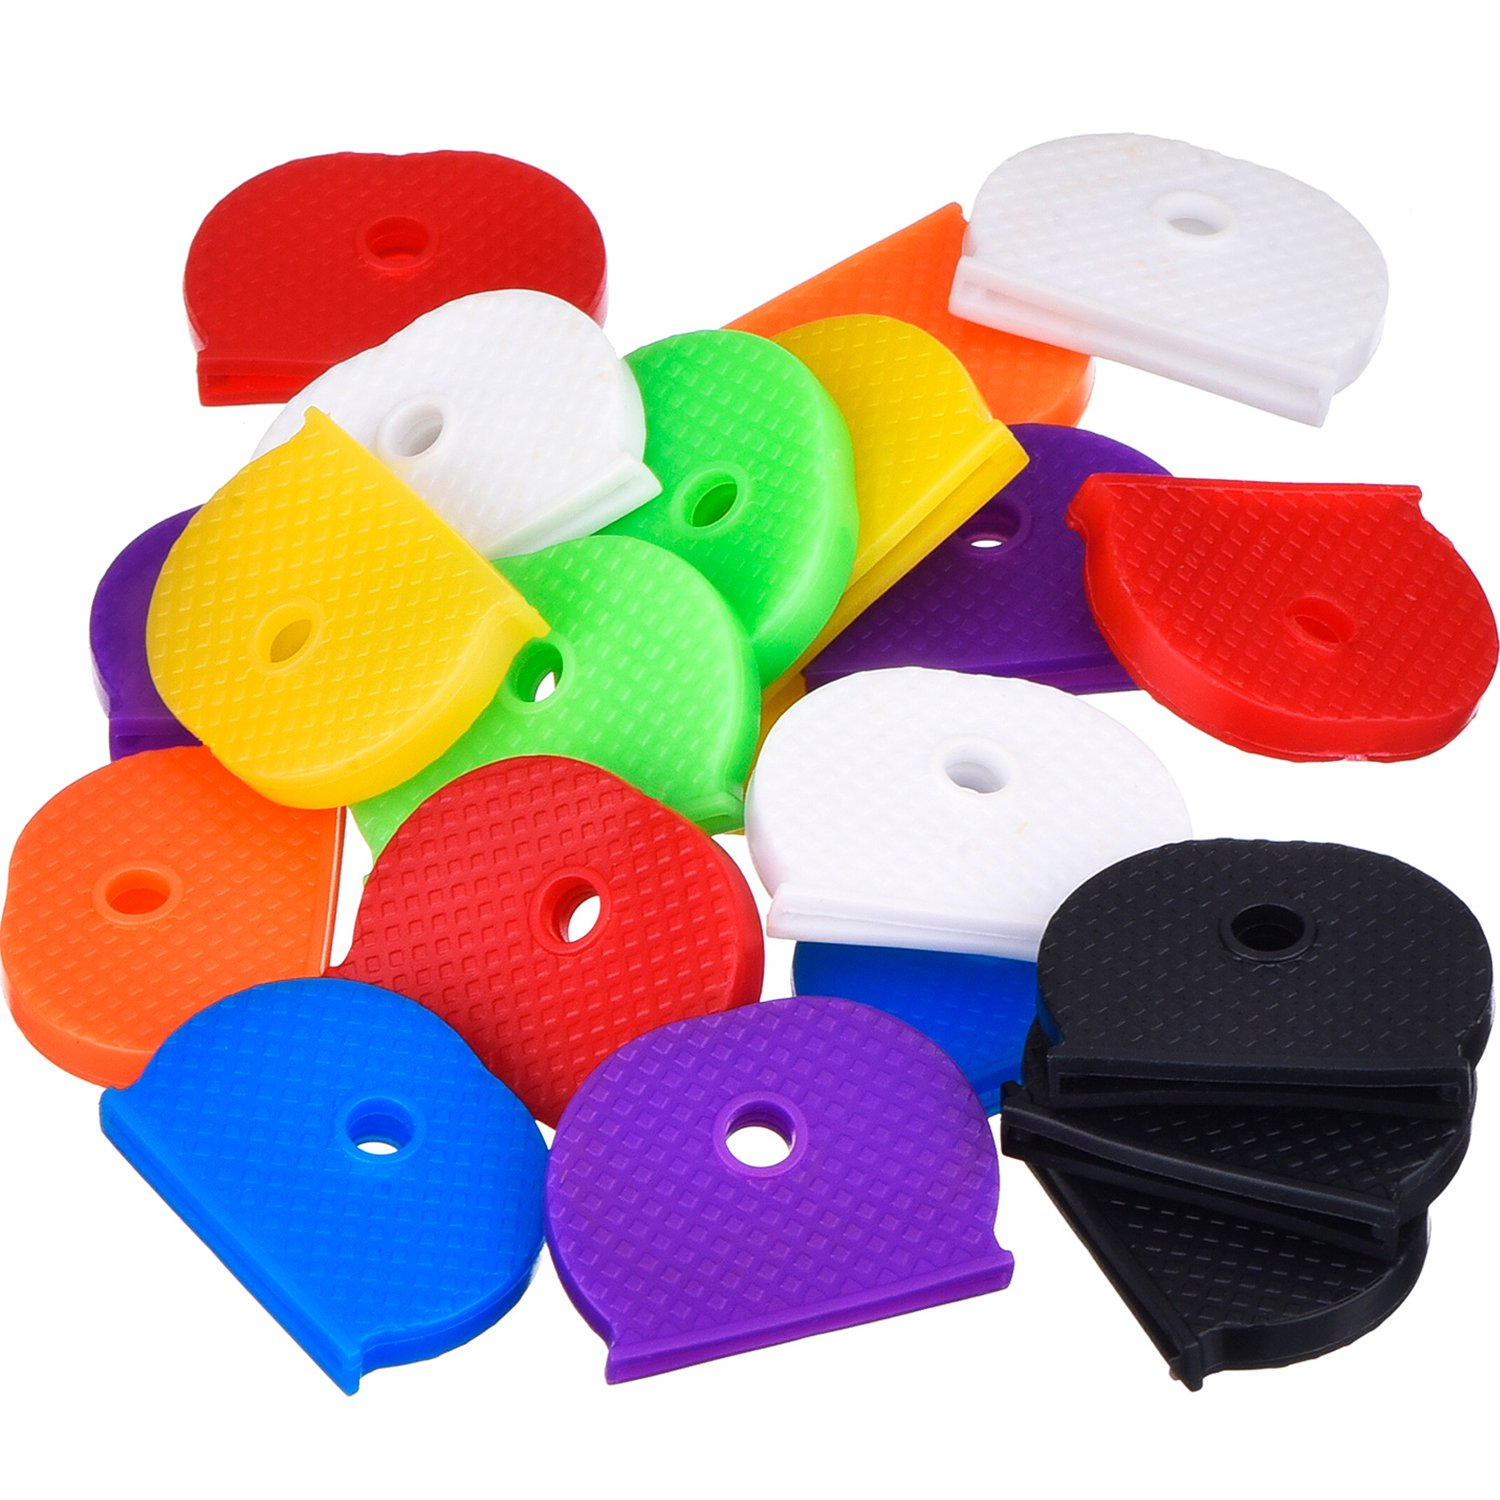 24 Pieces Key Caps Set Flexible Key Covers for Easy Identifying Door Keys, 8 Colors Willbond